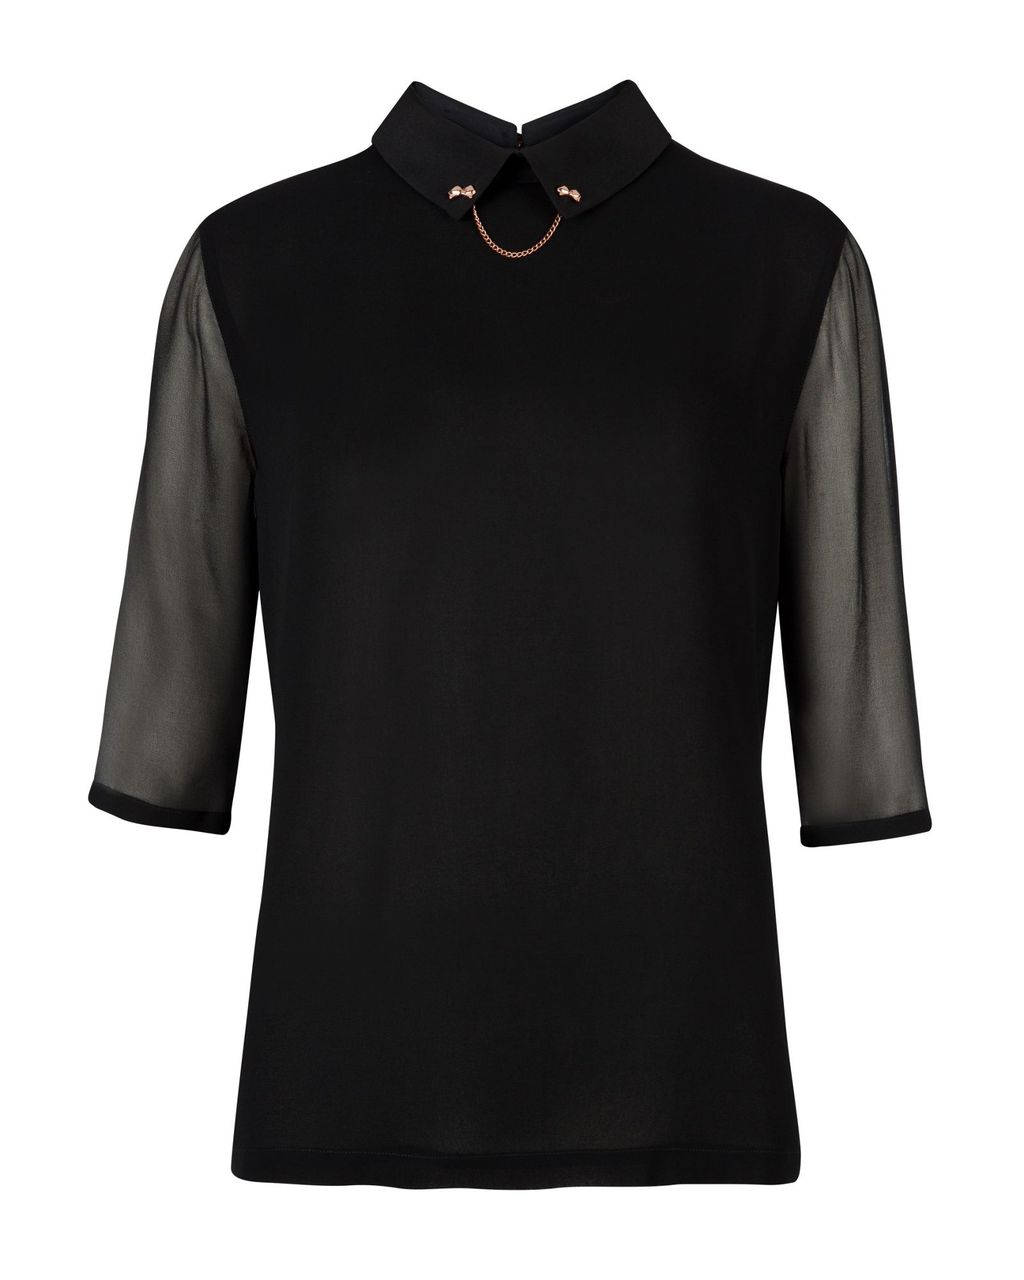 Irris Bow Chain Collar Shirt, Black - pattern: plain; predominant colour: black; occasions: casual, evening, work, creative work; length: standard; style: top; fibres: polyester/polyamide - 100%; fit: body skimming; neckline: no opening/shirt collar/peter pan; sleeve length: 3/4 length; sleeve style: standard; texture group: sheer fabrics/chiffon/organza etc.; pattern type: fabric; embellishment: chain/metal; season: a/w 2013; wardrobe: highlight; embellishment location: neck